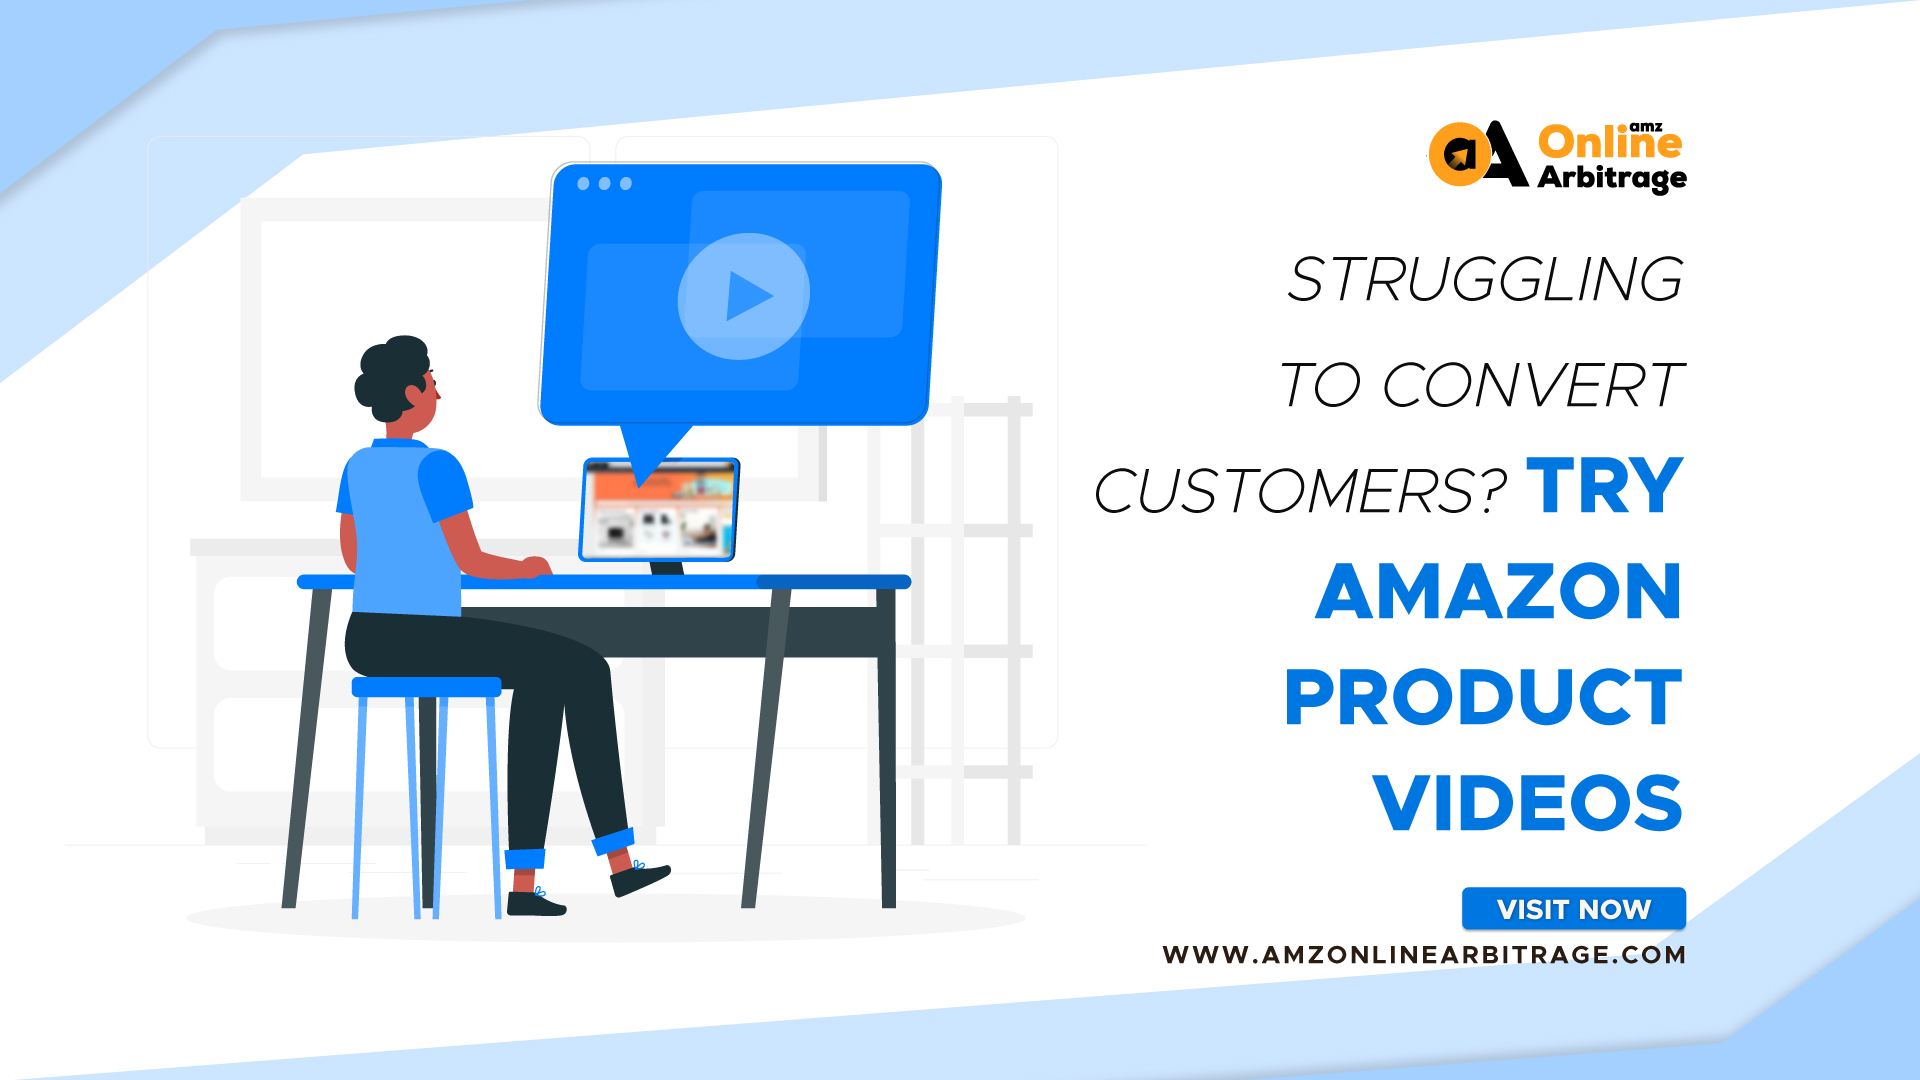 STRUGGLING TO CONVERT CUSTOMERS? TRY AMAZON PRODUCT VIDEOS